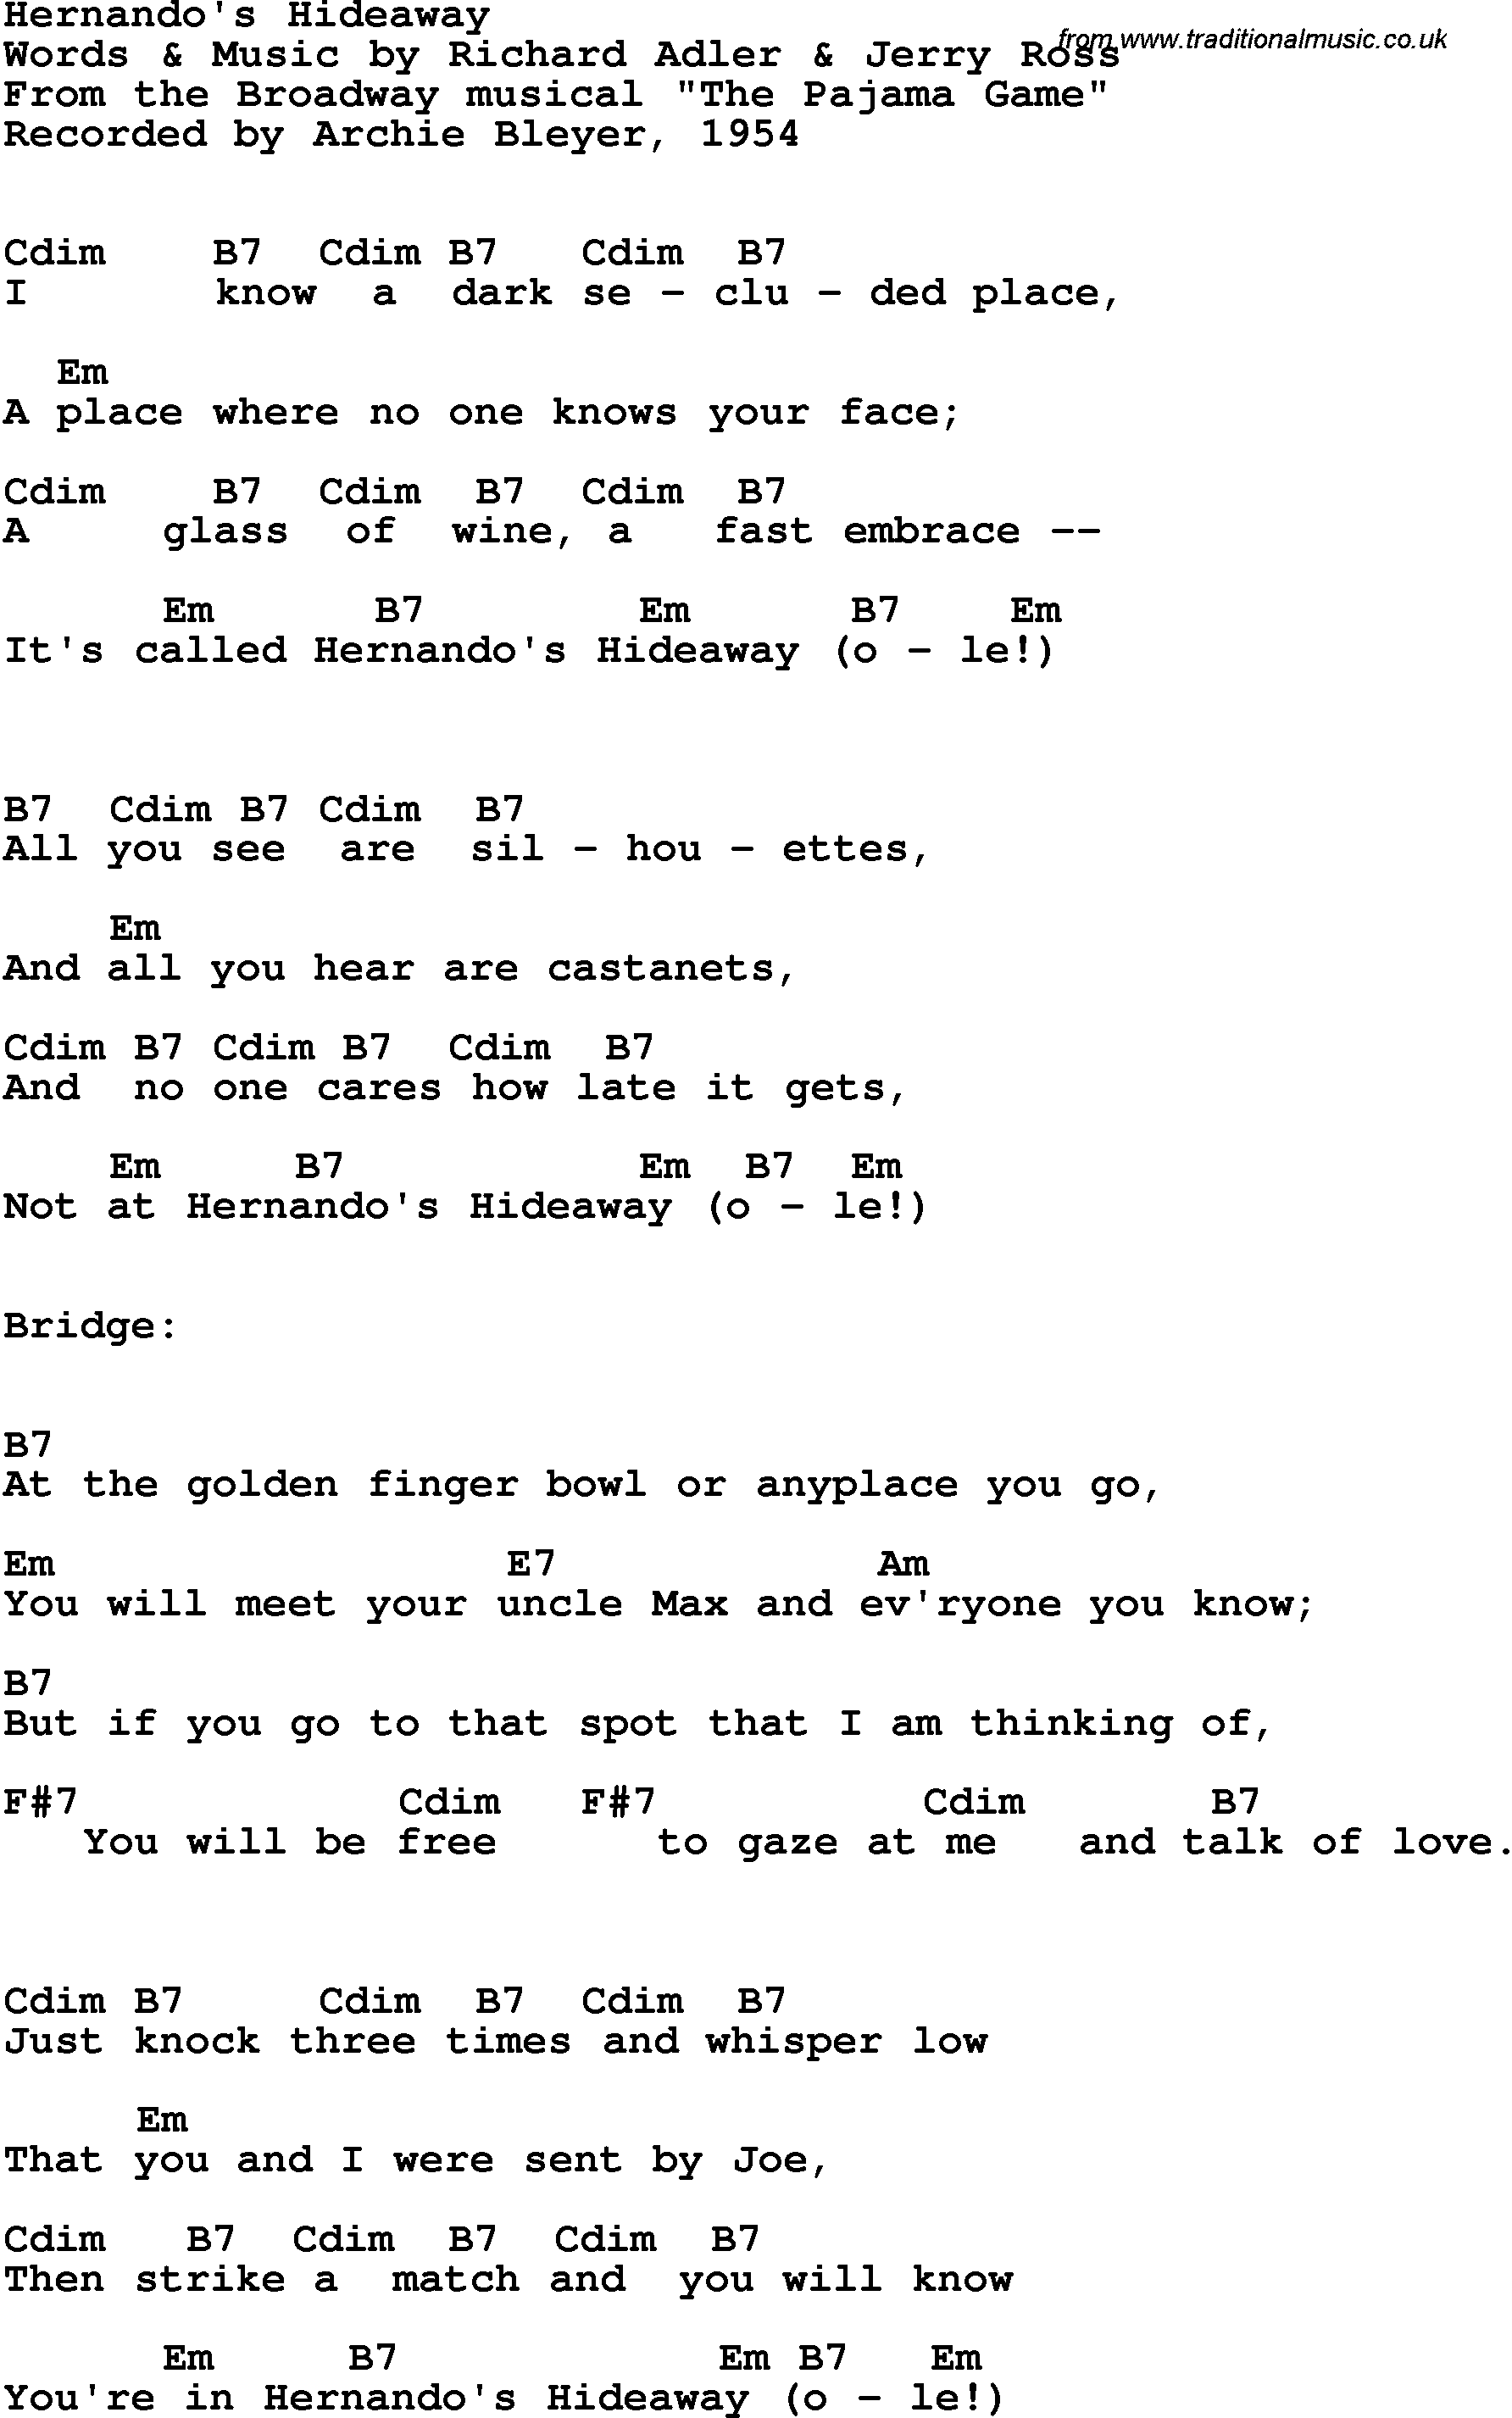 Hook up butterfingers lyrics